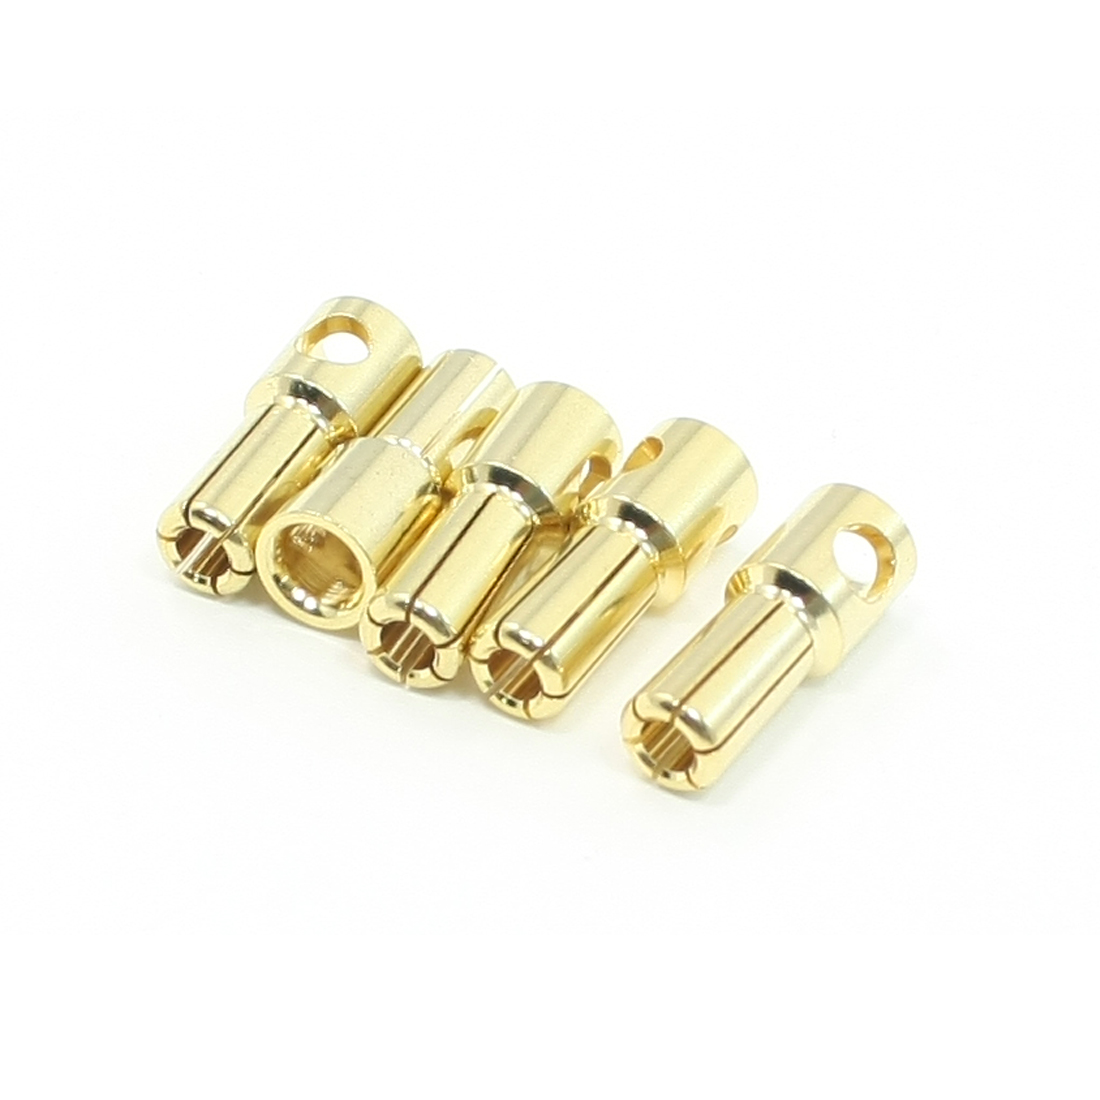 5 Pcs RC Model Li-Po Battery Male Banana Cone Connector Plug 5.5mm